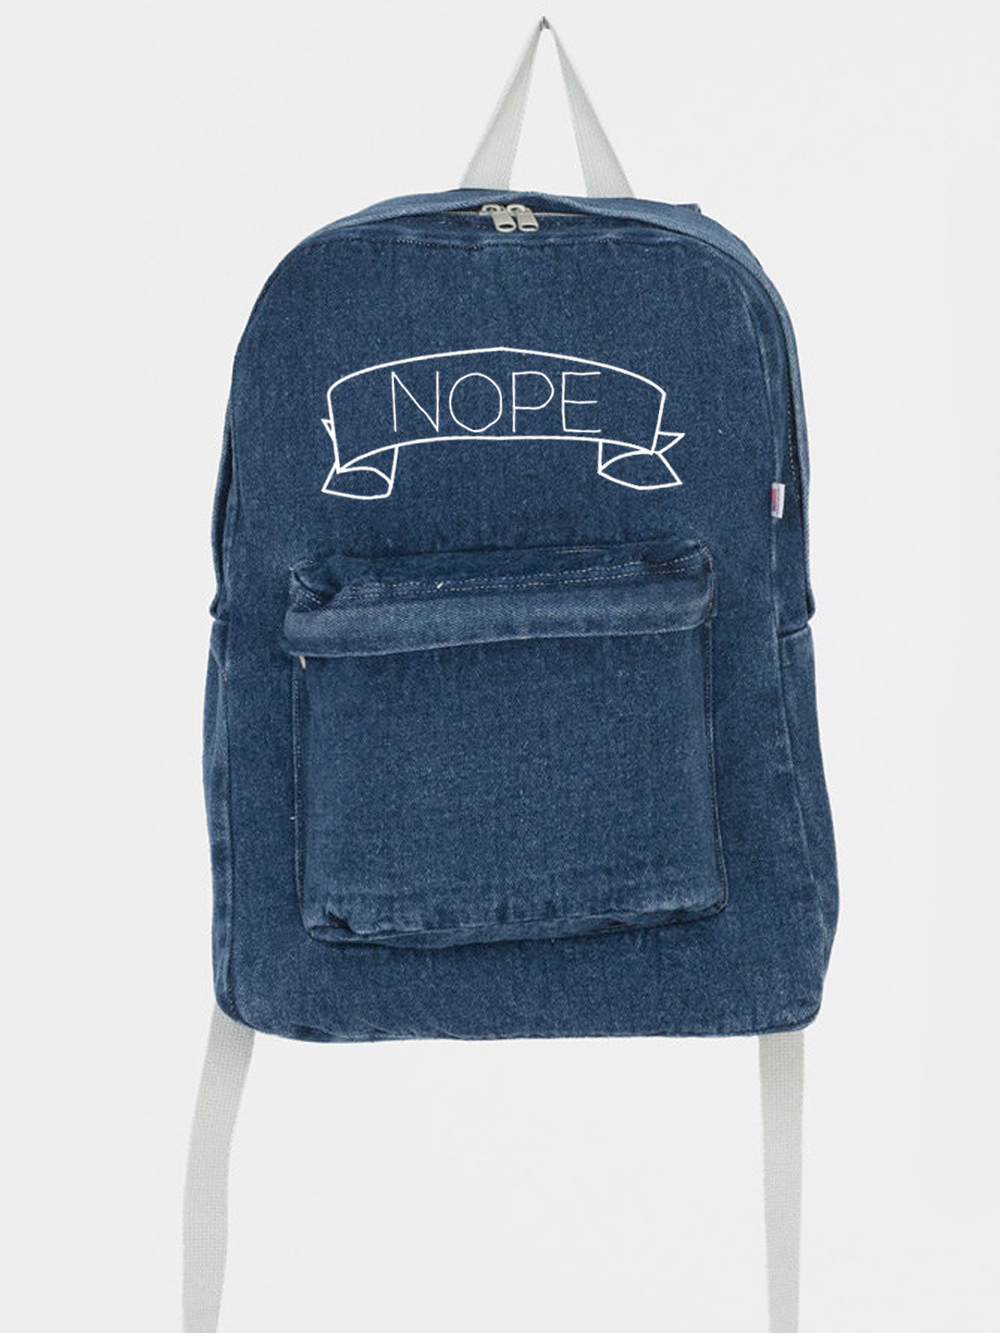 Nope Denim School Bag ♡